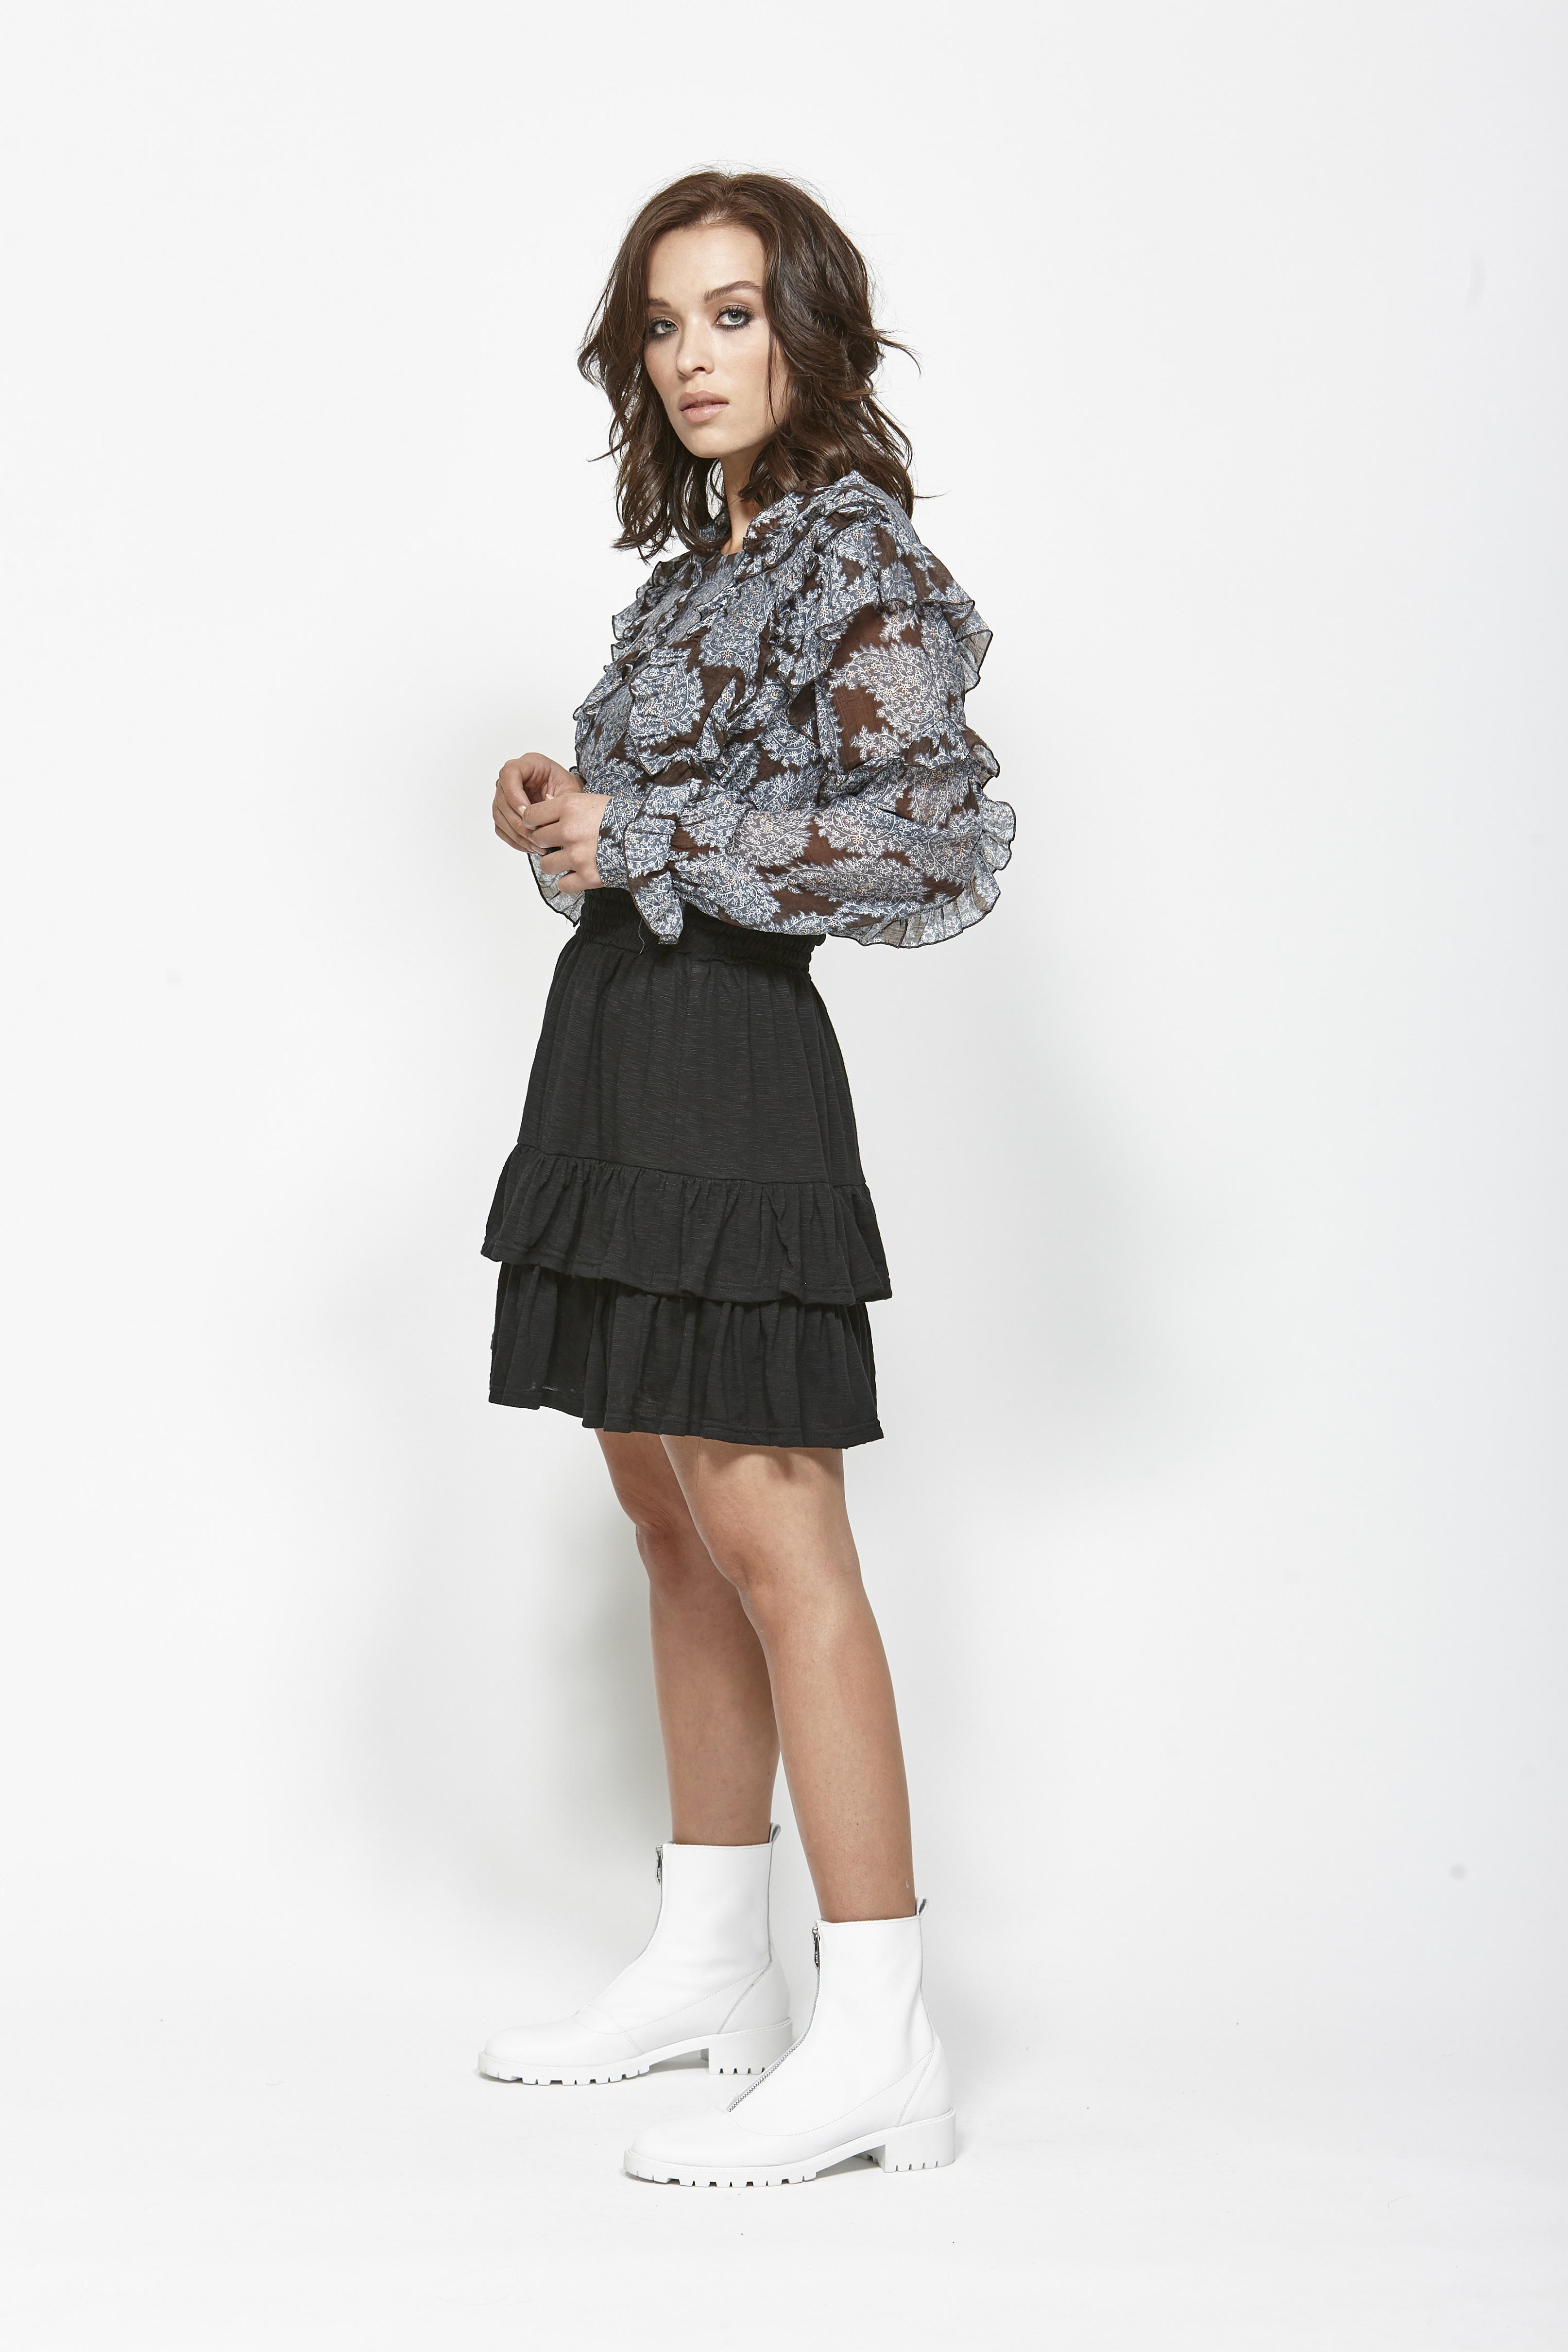 LEO+BE LB1368 Space Shirt, RRP$159.00 & LEO+BE LB1357 Sub Skirt, RRP$135.00 (1)